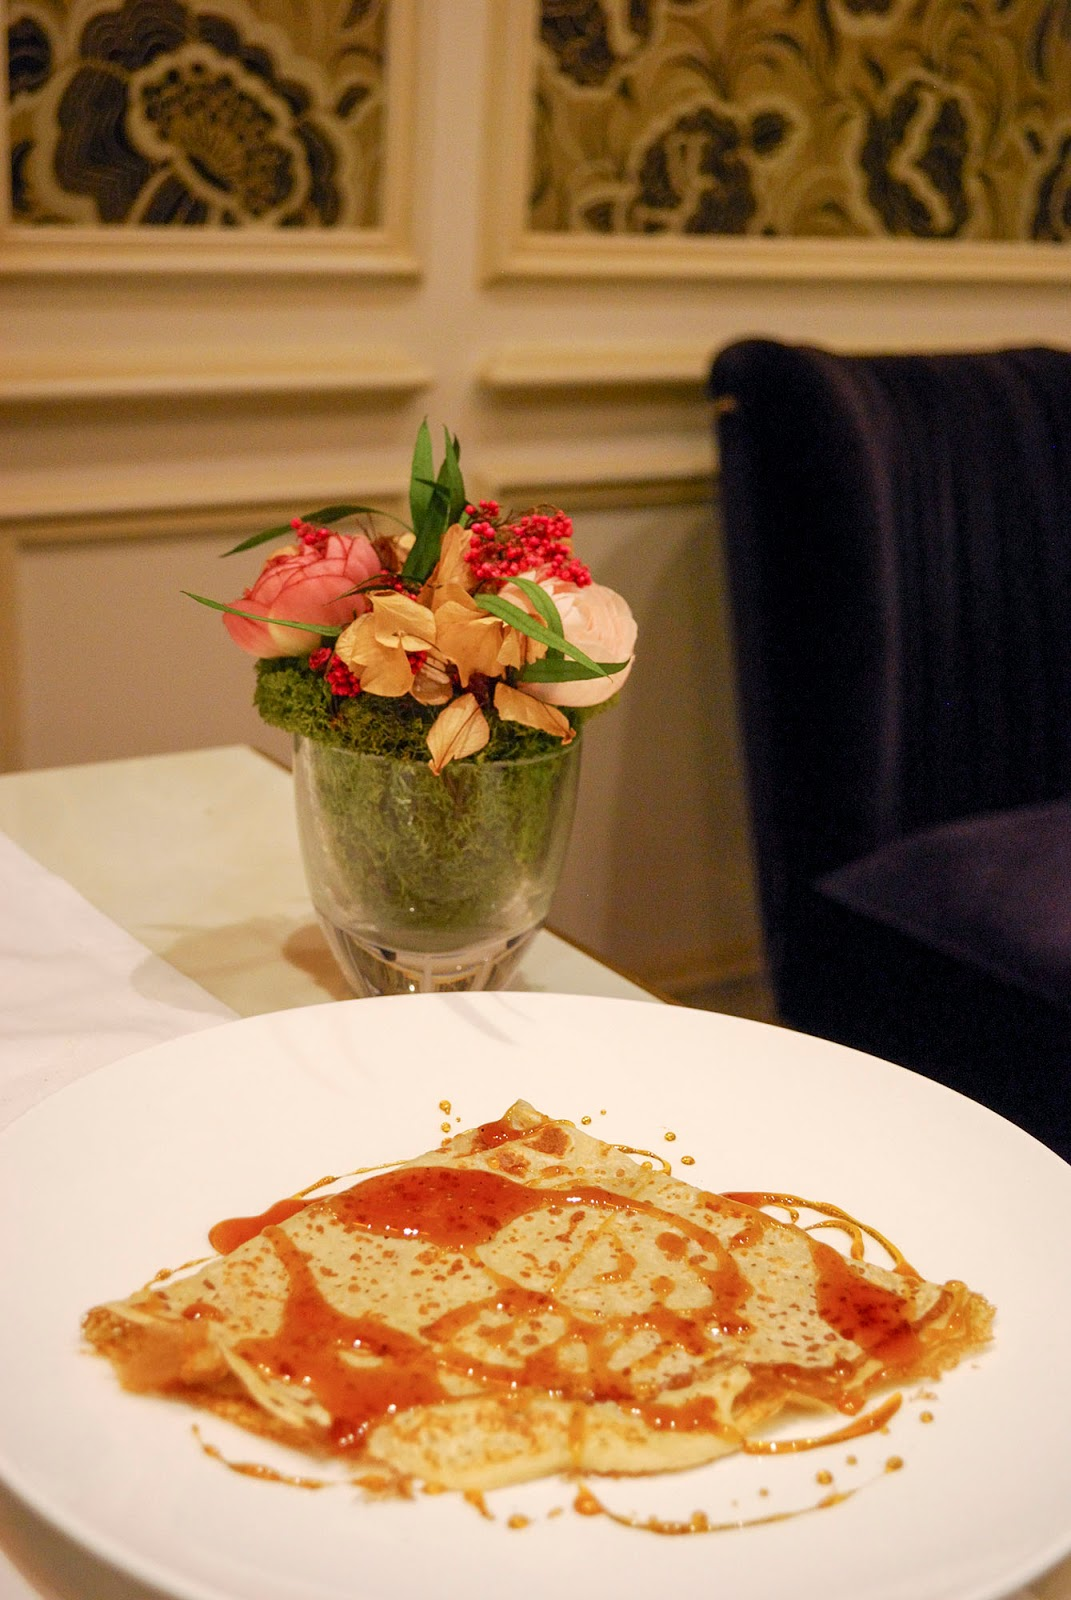 brasserie antoinette french parisian brunch madrid restaurant breakfast spain crepe